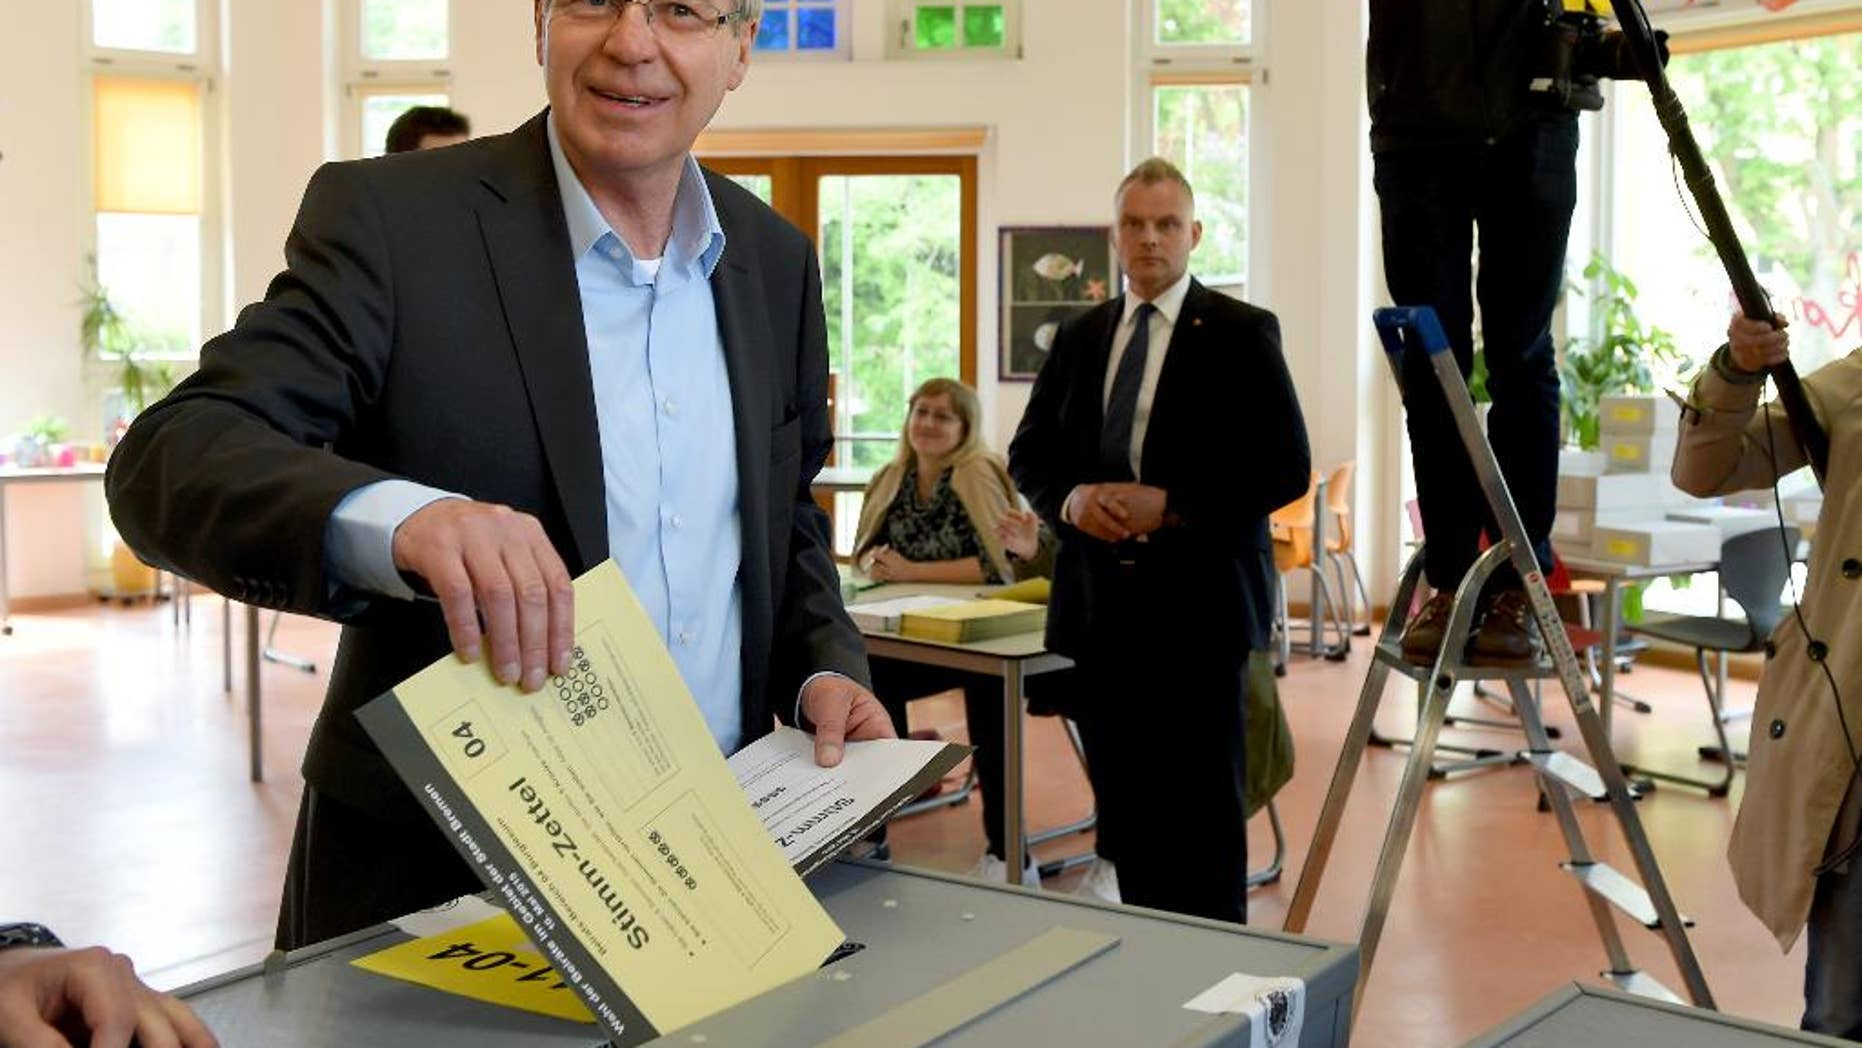 Mayor of Bremen Jens Boehrnsen casts his vote for the state election at a polling station in Bremen, Germany, Sunday, May 10, 2015. Germany's smallest state Bremen has been led by the center-left Social Democrats since the 1940s and polls point to a majority for popular Mayor Boehrnsen's current coalition with the Greens in the regional legislature. (Ingo Wagner/dpa via AP)